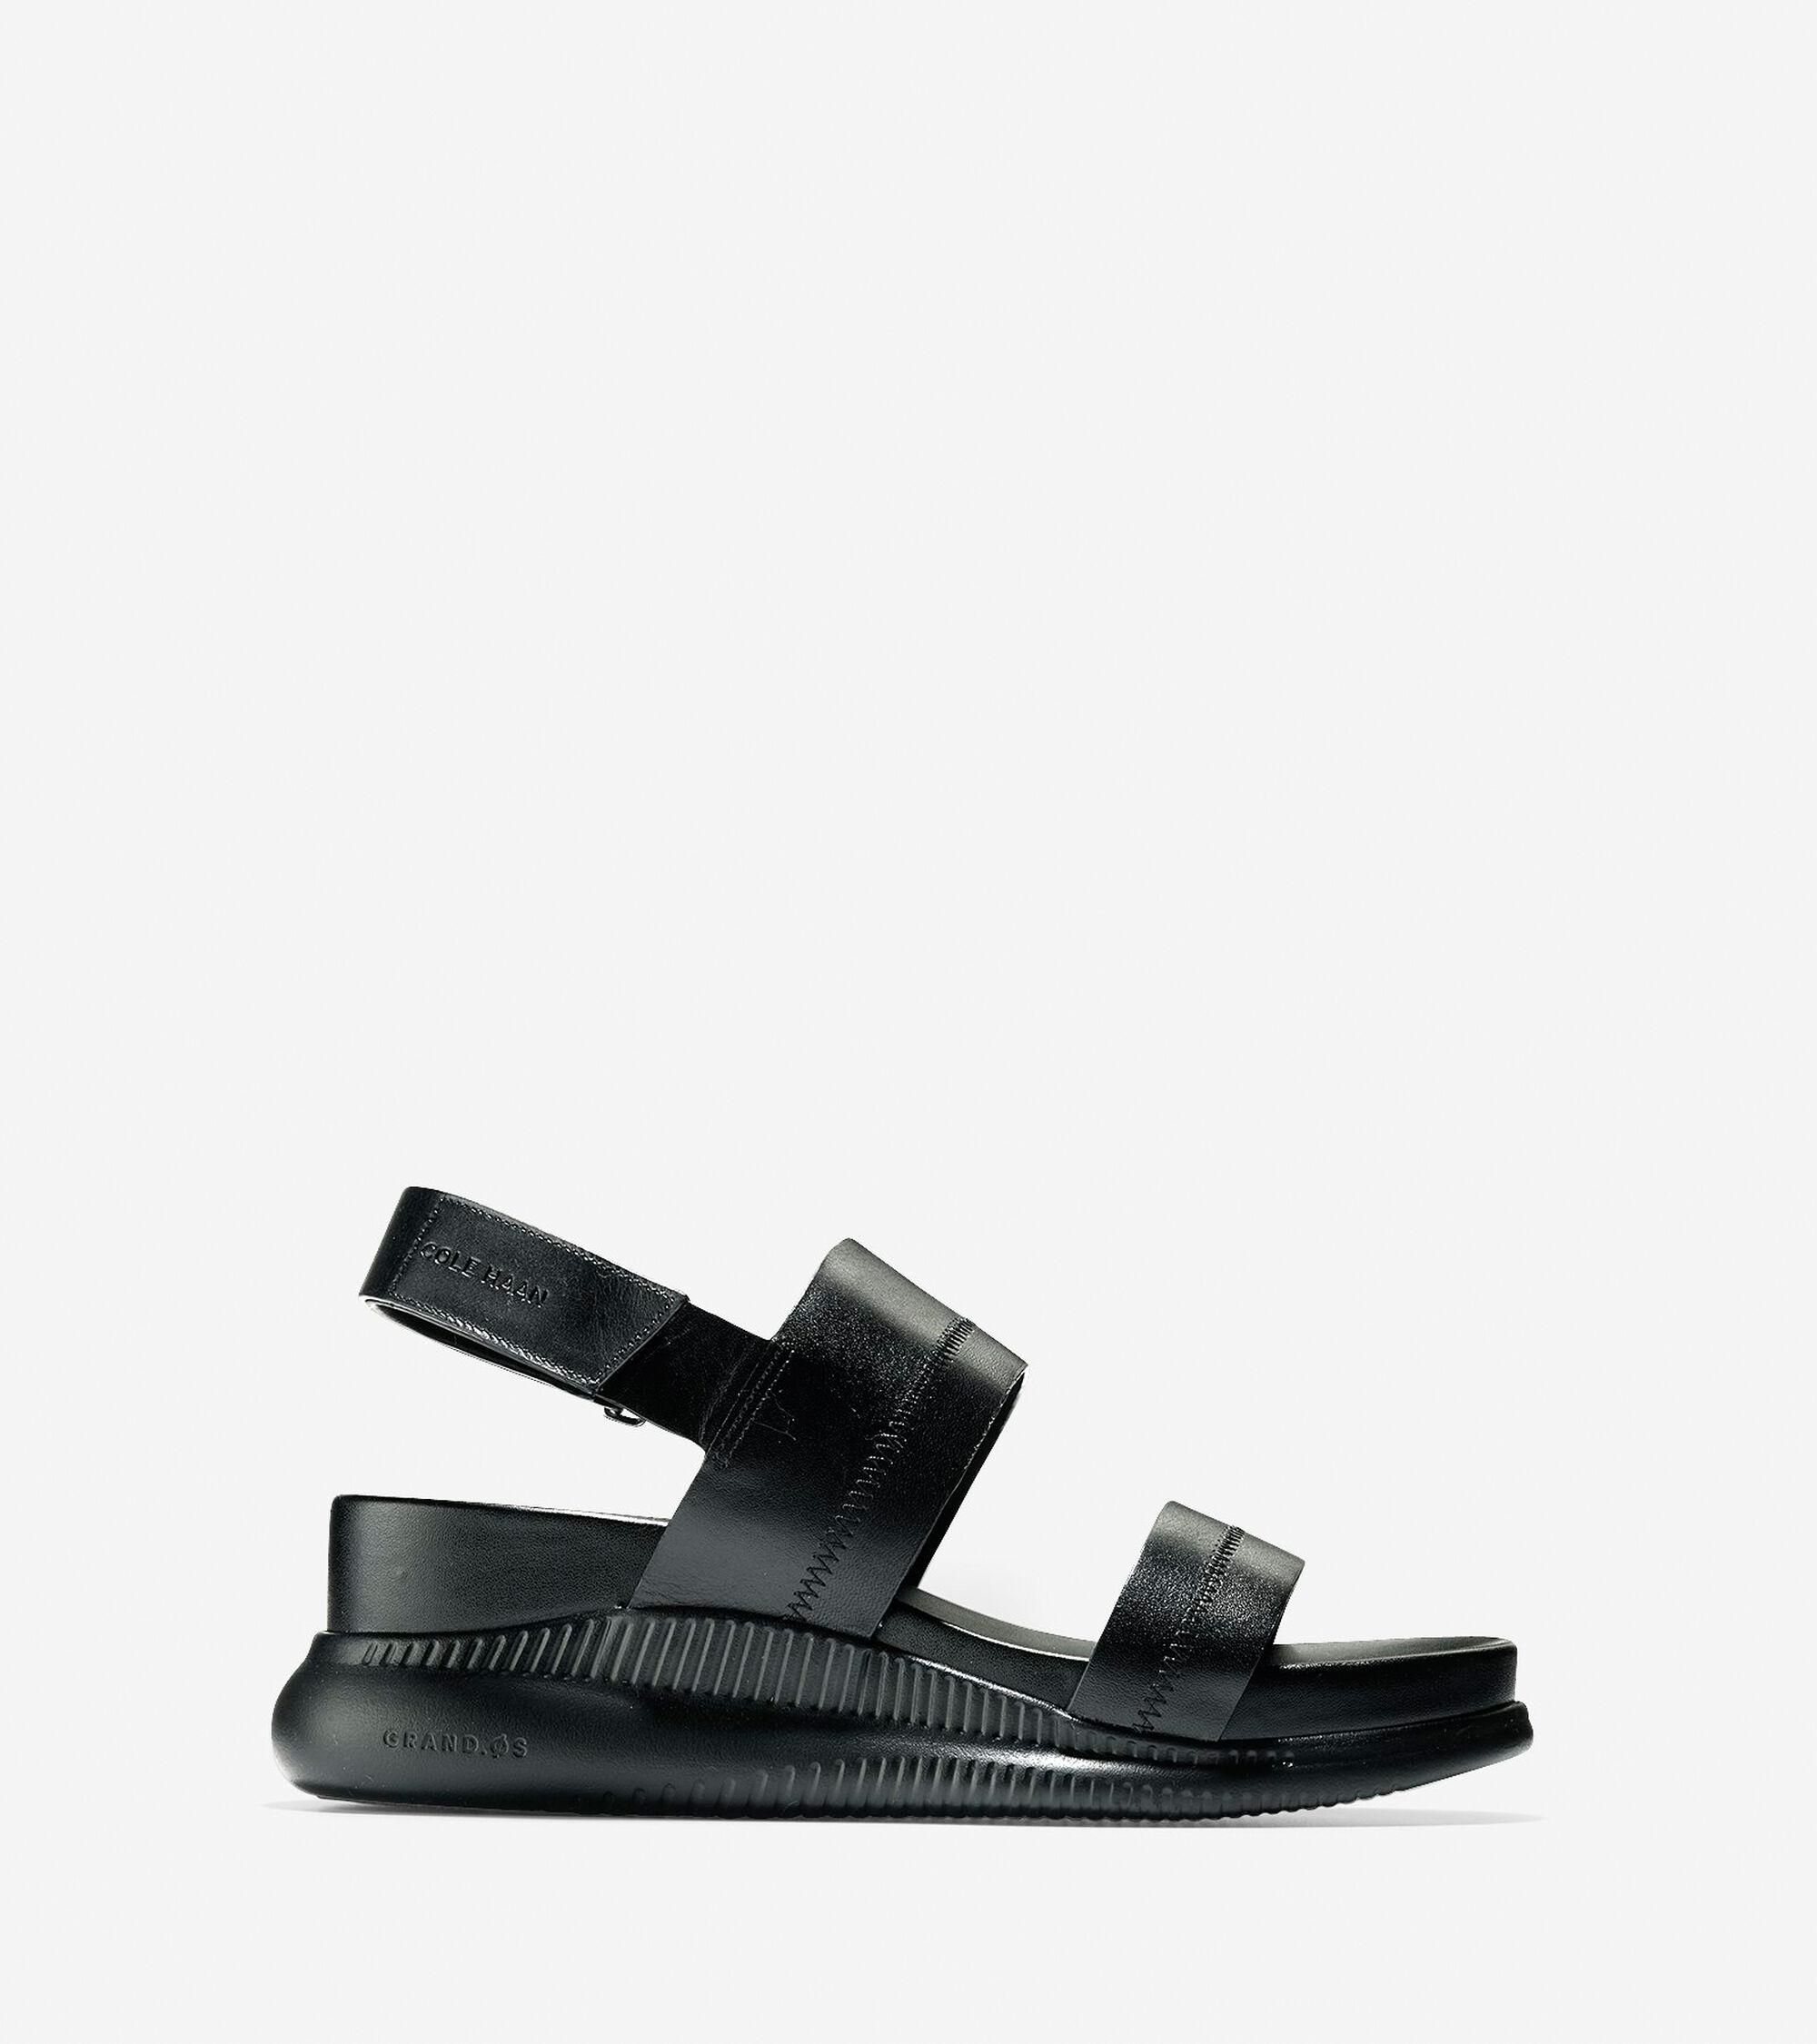 ec169777a Cole Haan Women s 2.ZERØGRAND Slide Sandal (30mm) in Black-black   ColeHaan .com